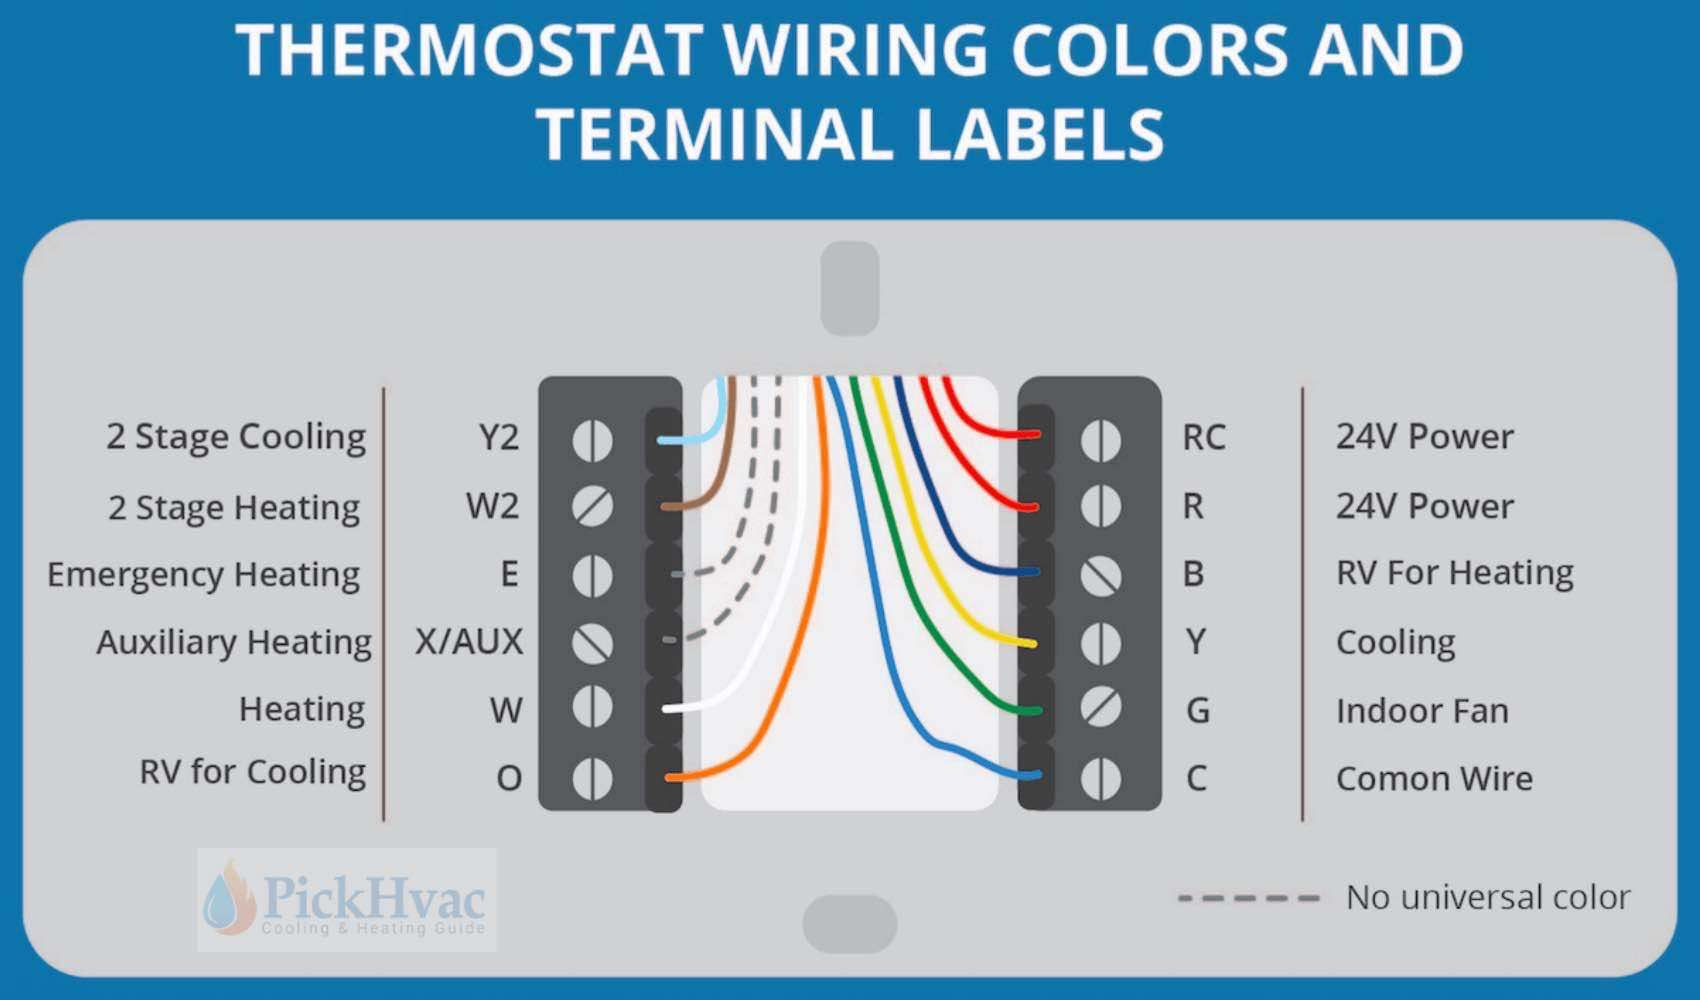 thermostat wiring colors to labels thermostat wiring in nest thermostat wiring diagram colors thermostat wiring diagram and colors #4